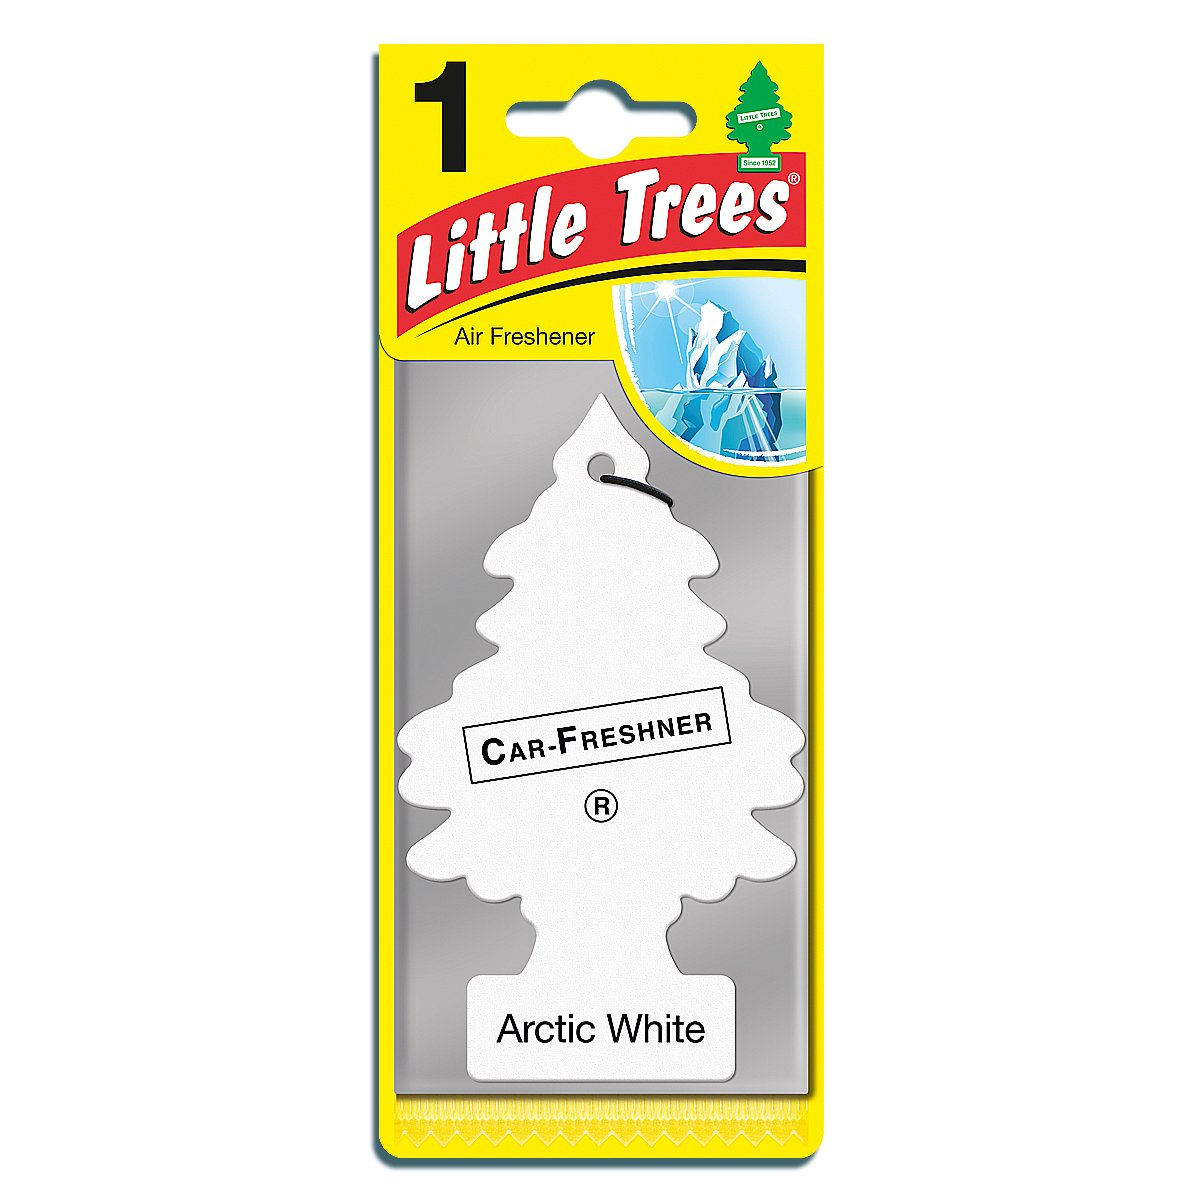 Little Trees MTR0061 Désodorisant, Arctic White Fragrance good